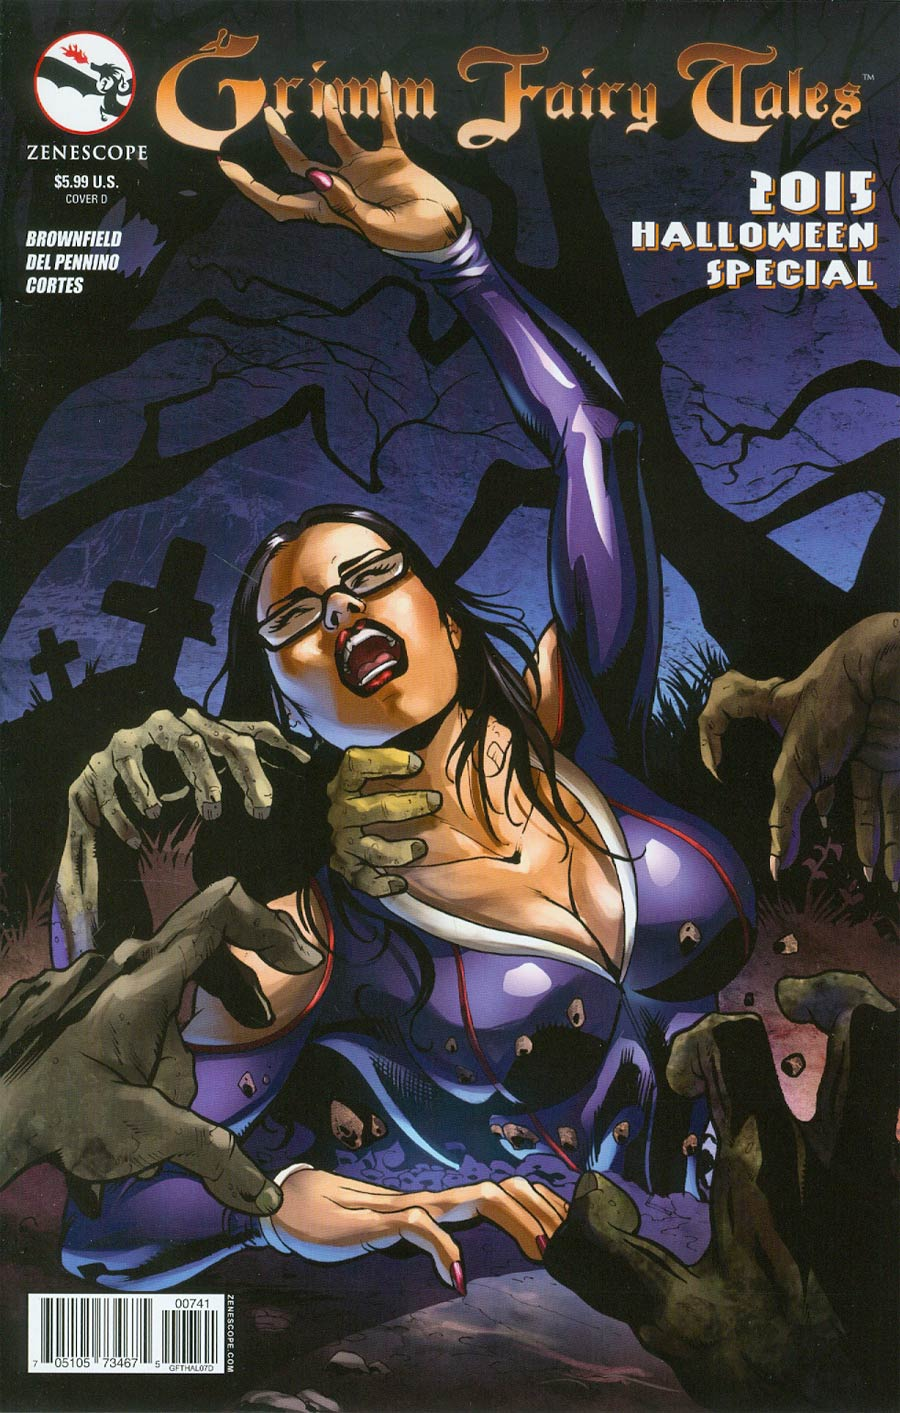 Grimm Fairy Tales Halloween Special 2015 Cover D Maria Sanapo